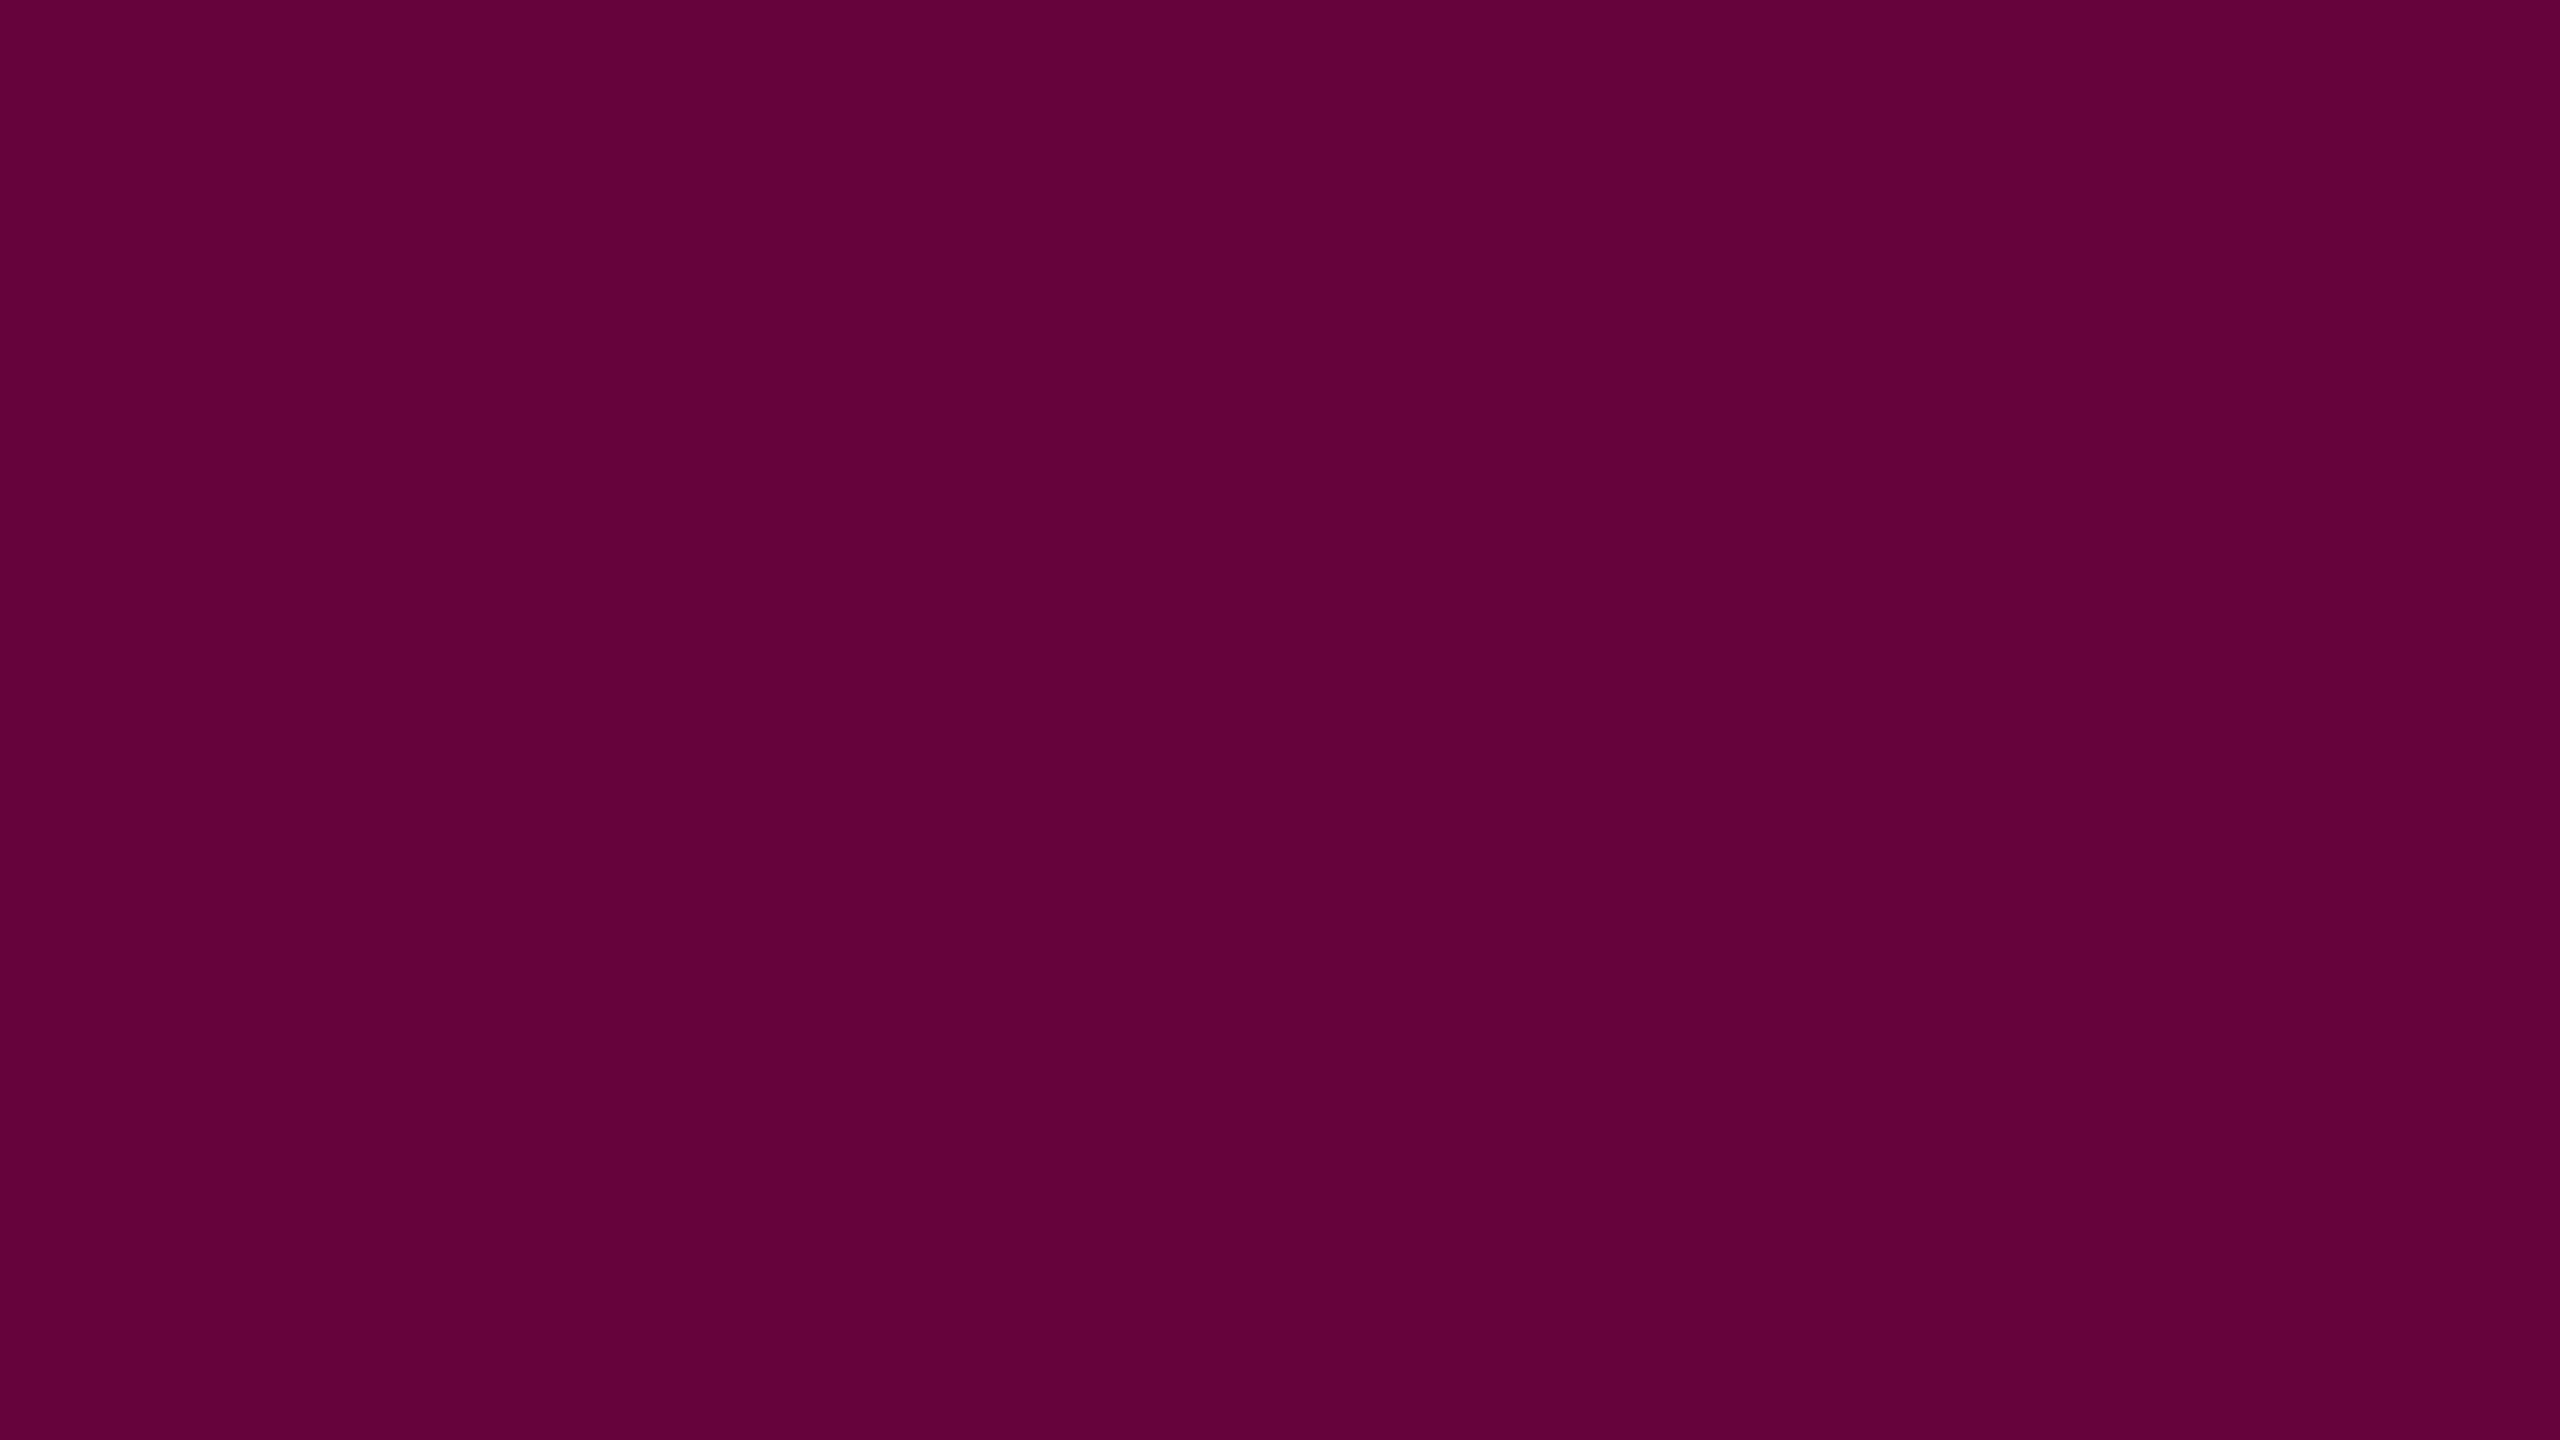 2560x1440 Tyrian Purple Solid Color Background